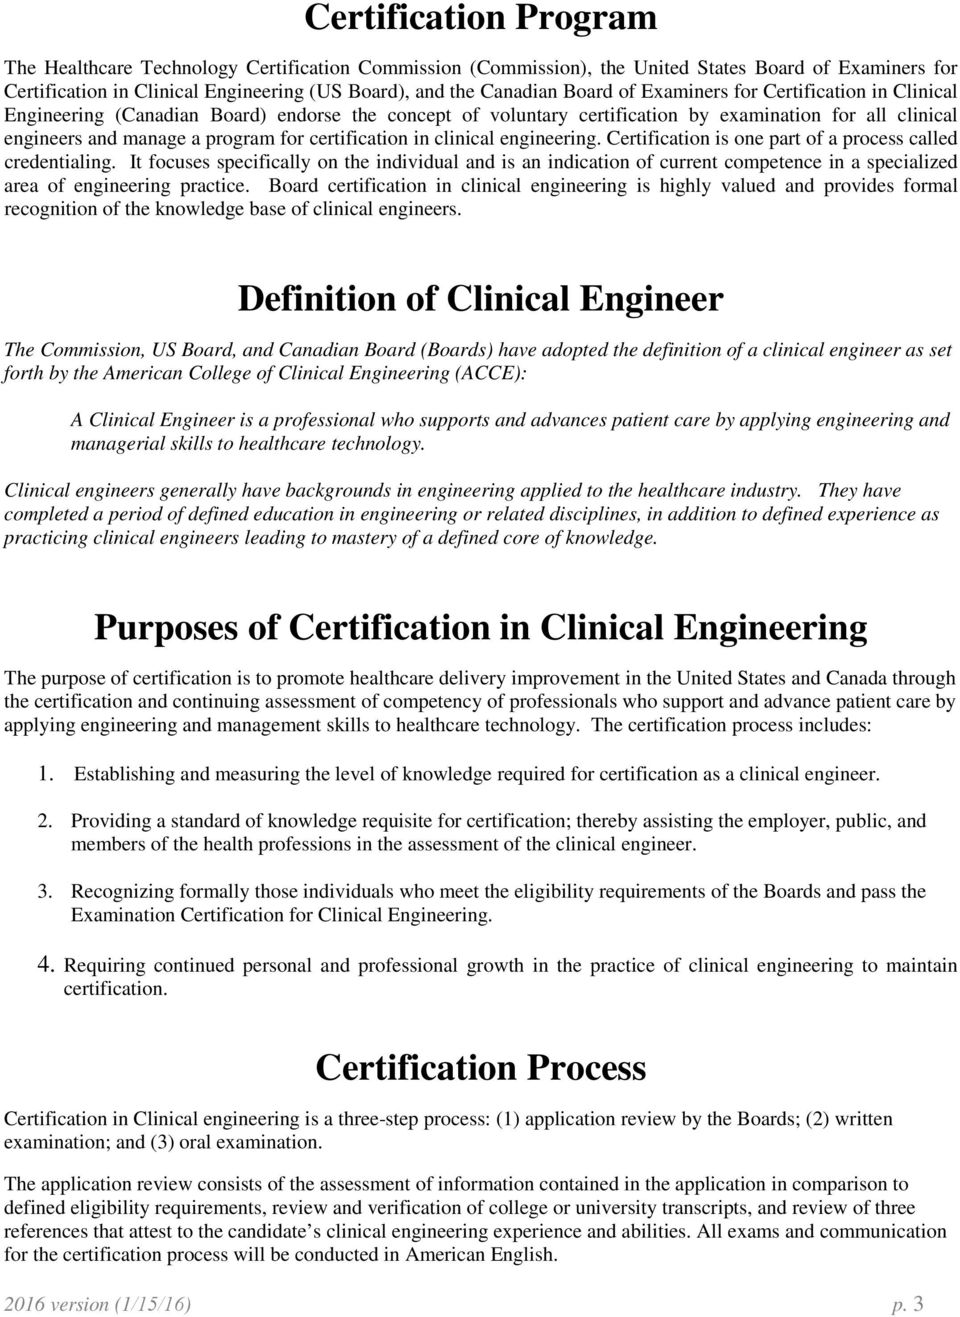 certification in clinical engineering. Certification is one part of a process called credentialing.